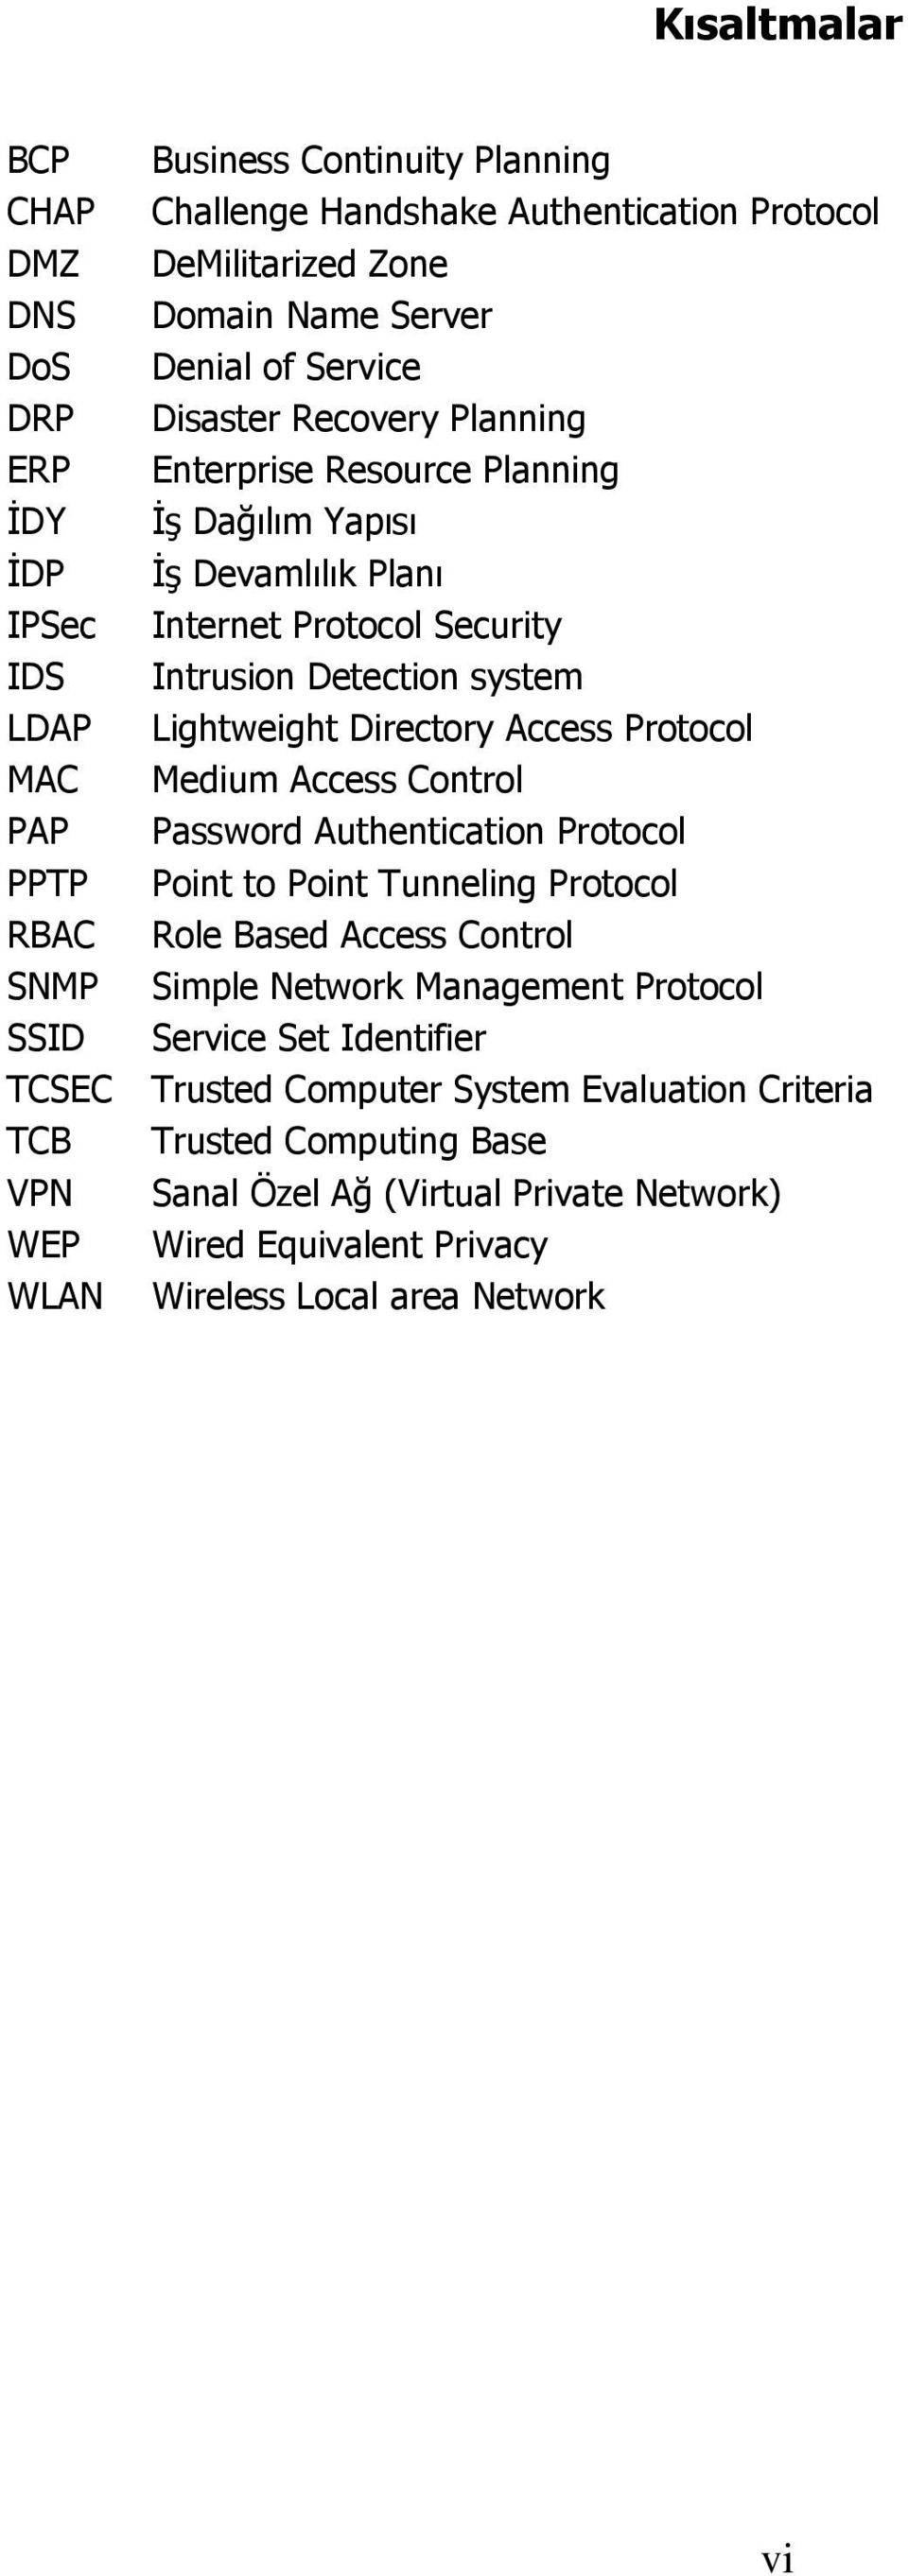 Protocol MAC Medium Access Control PAP Password Authentication Protocol PPTP Point to Point Tunneling Protocol RBAC Role Based Access Control SNMP Simple Network Management Protocol SSID